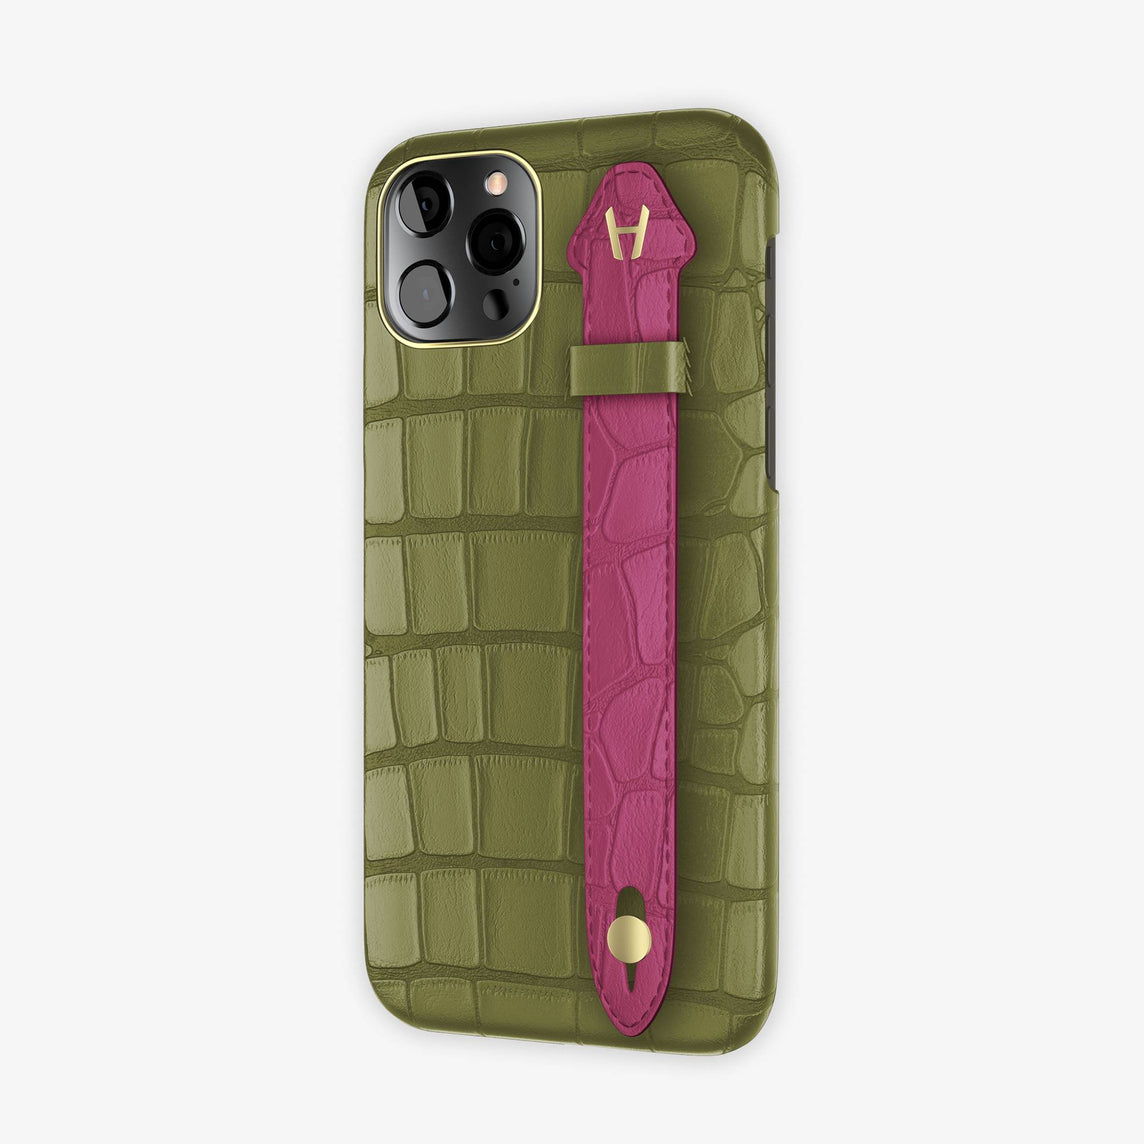 Alligator Side Finger Case iPhone 12 & iPhone 12 Pro | Khaki/Pink Fuchsia -Yellow Gold